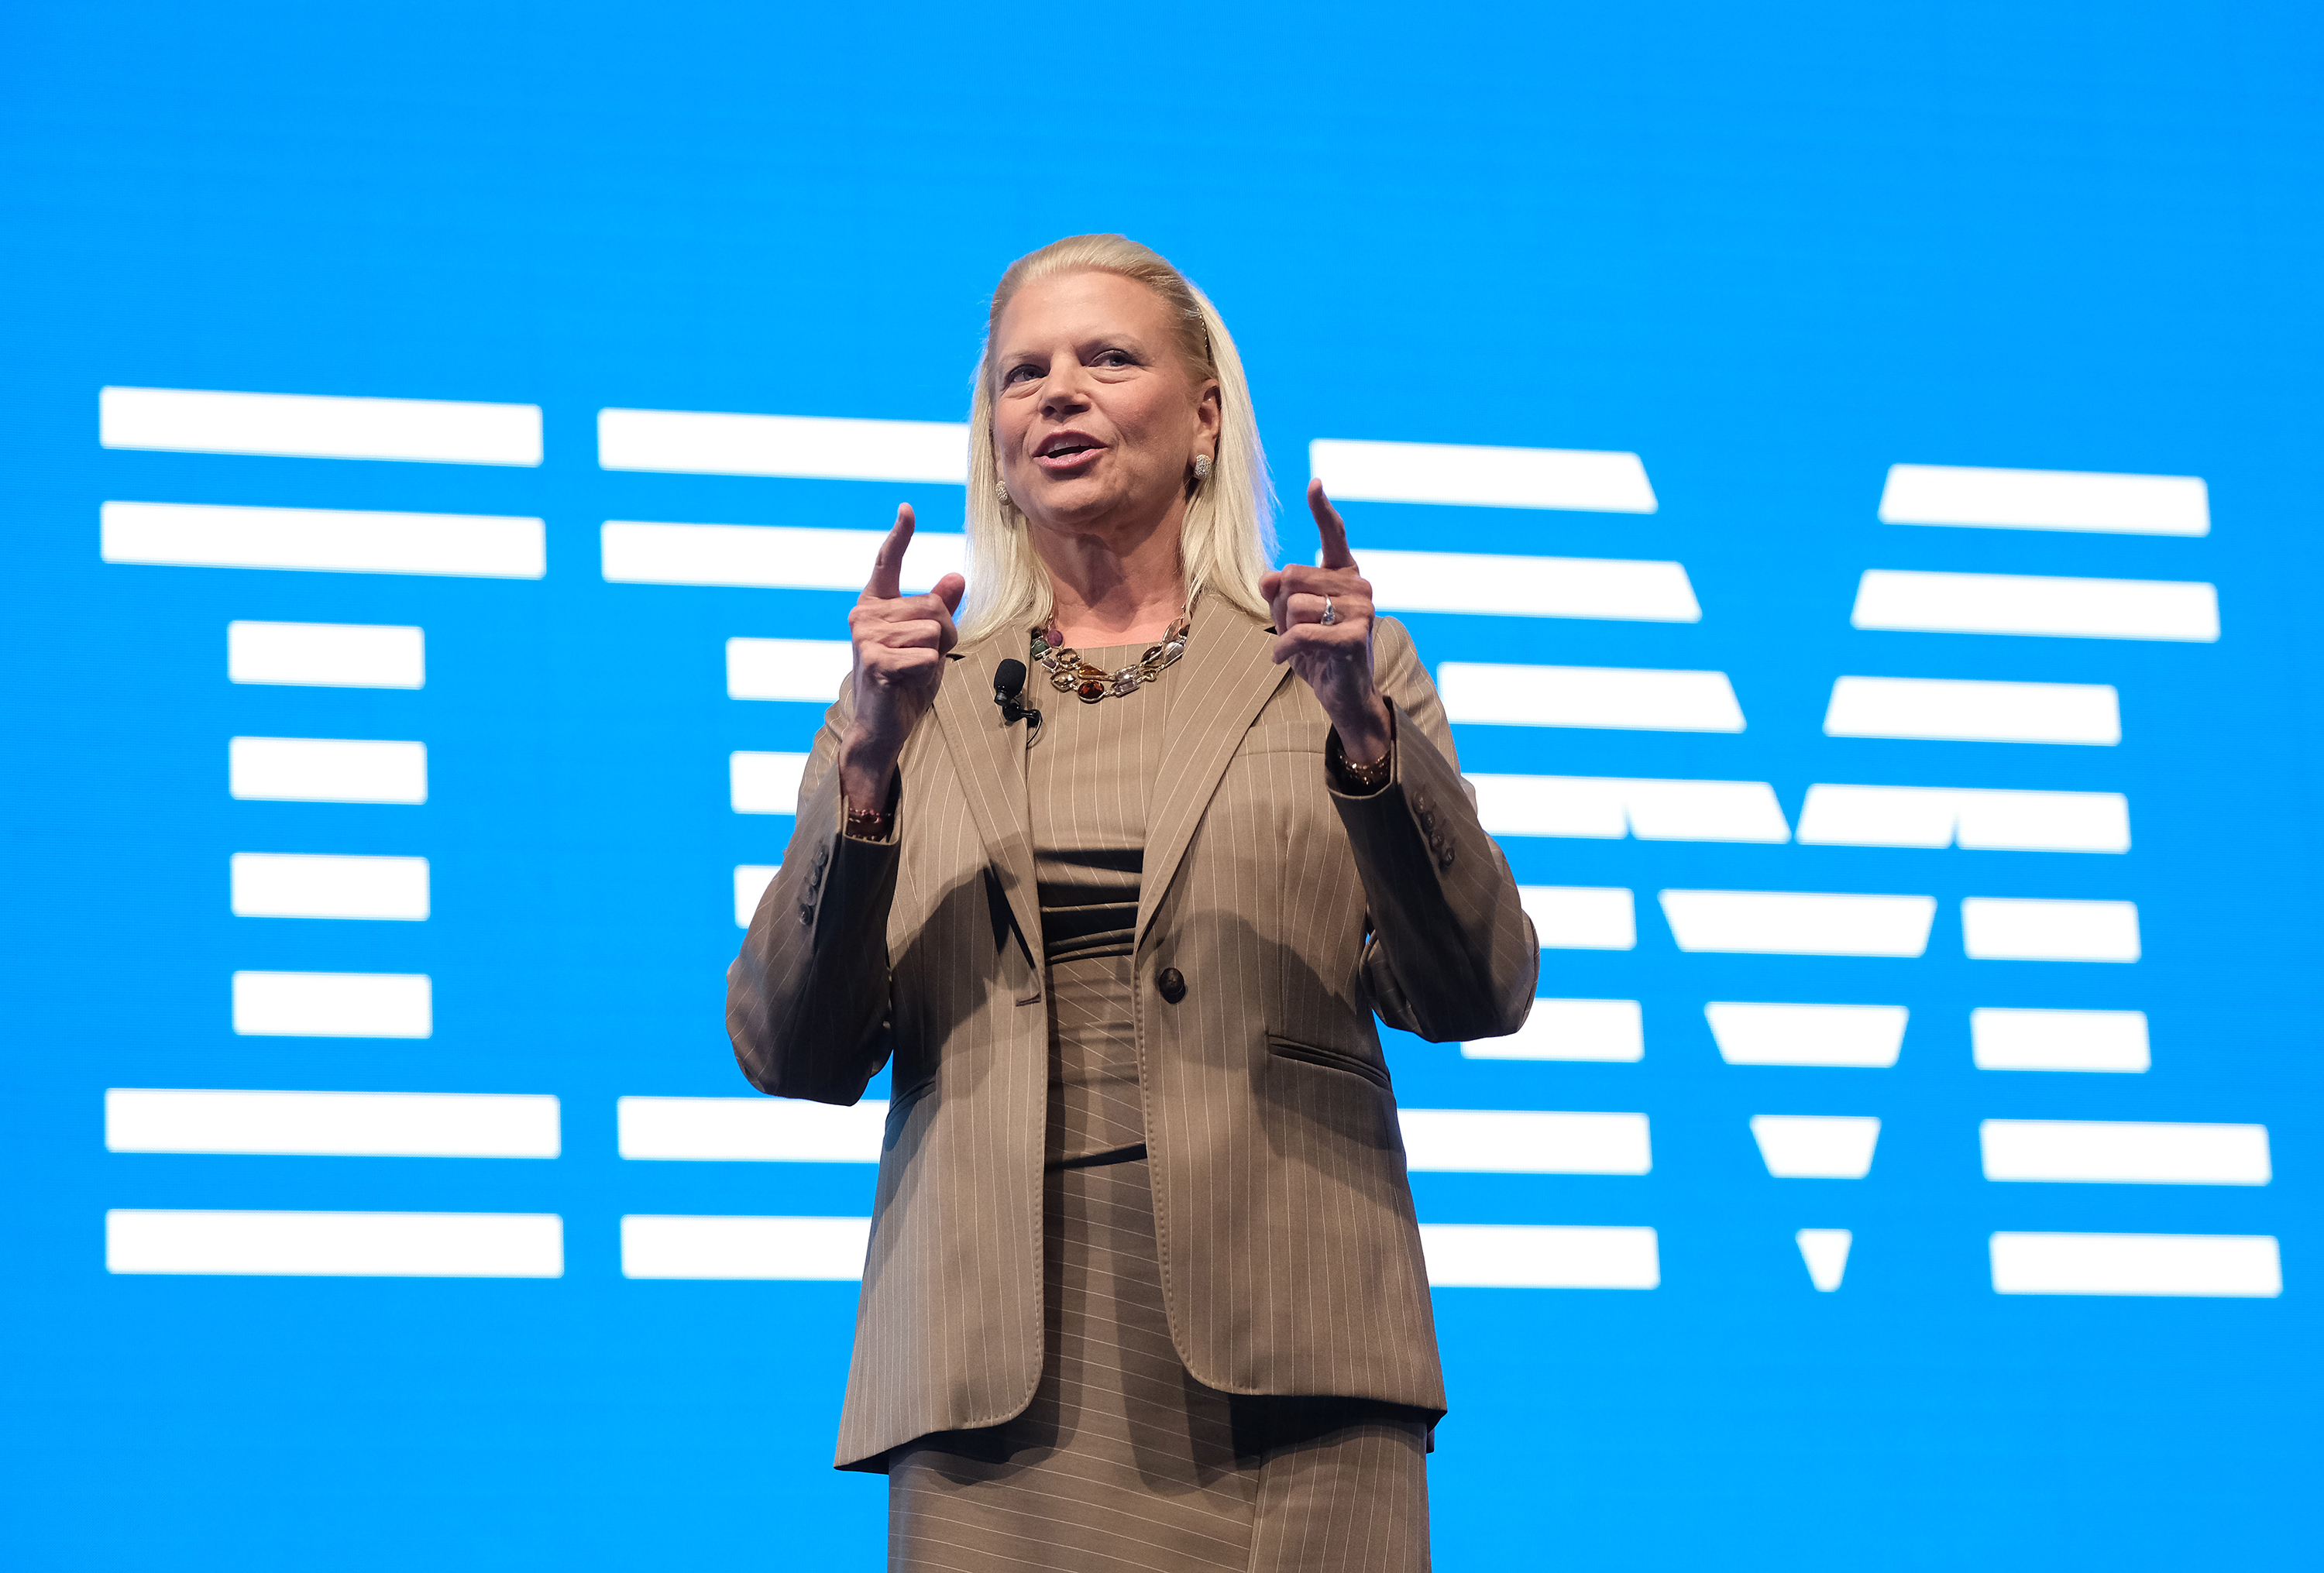 IBM must show restless investors that its cloud strategy is working